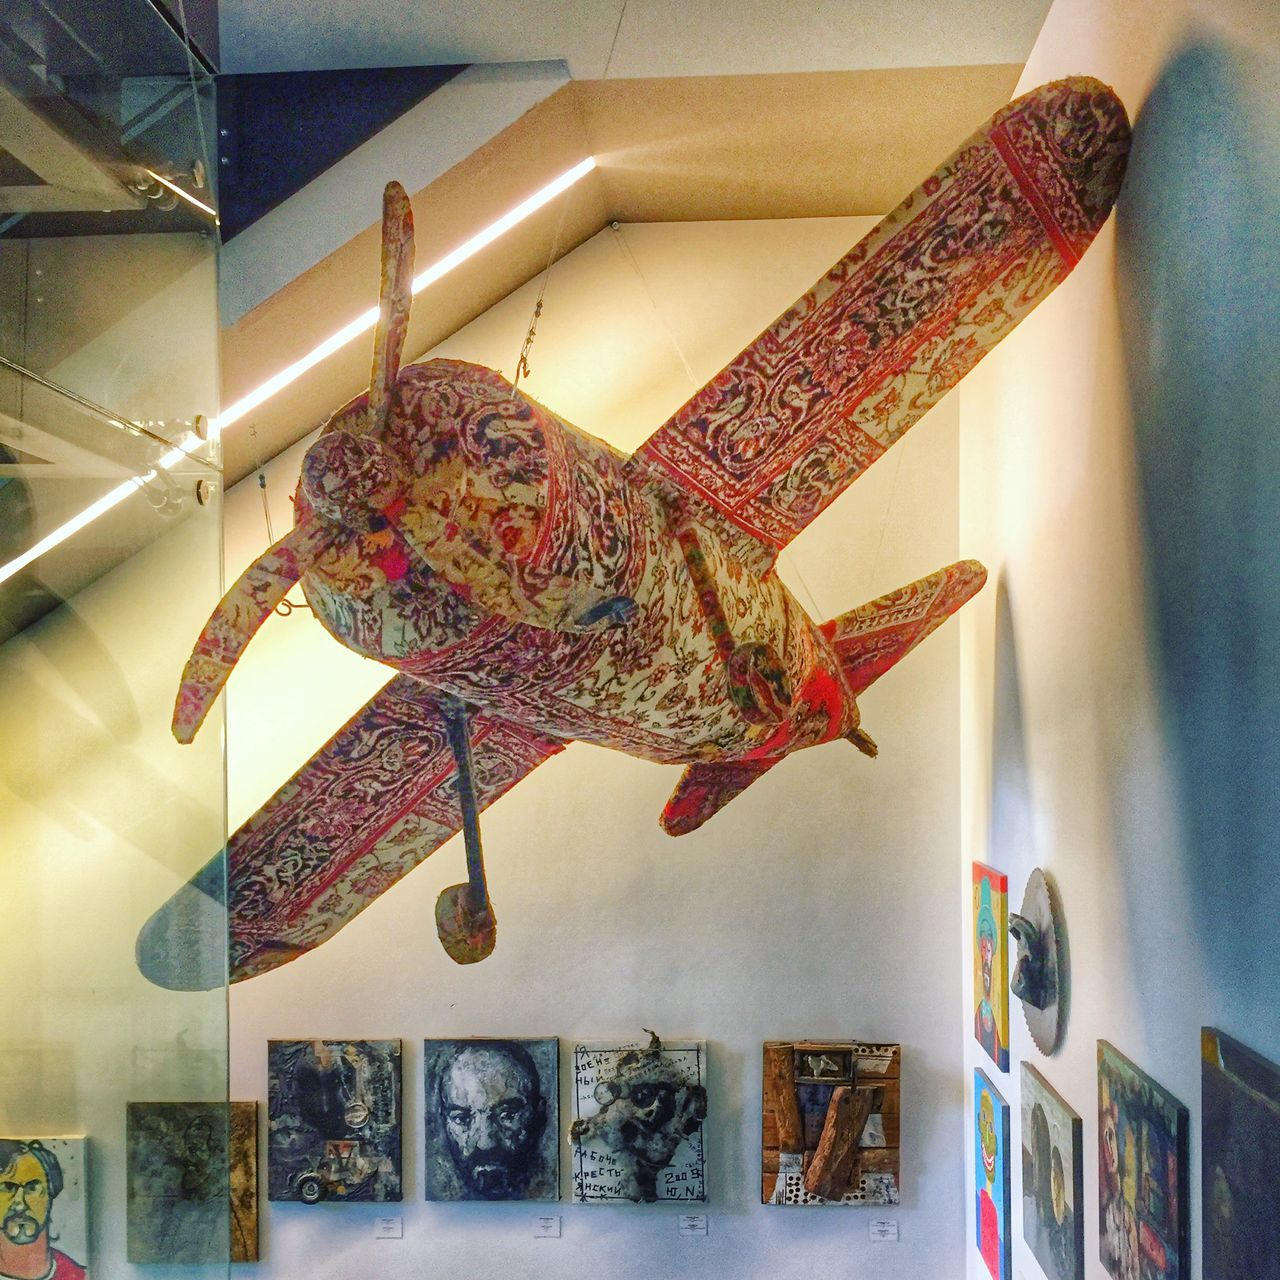 Airplane Carpet Fly Fly Away Flying Flying Carpet Flying Carpets Flying High Gallery Gallery Of Art Illuminated Indoors  Museum Museum Of Modern Art No People Retail  Wing